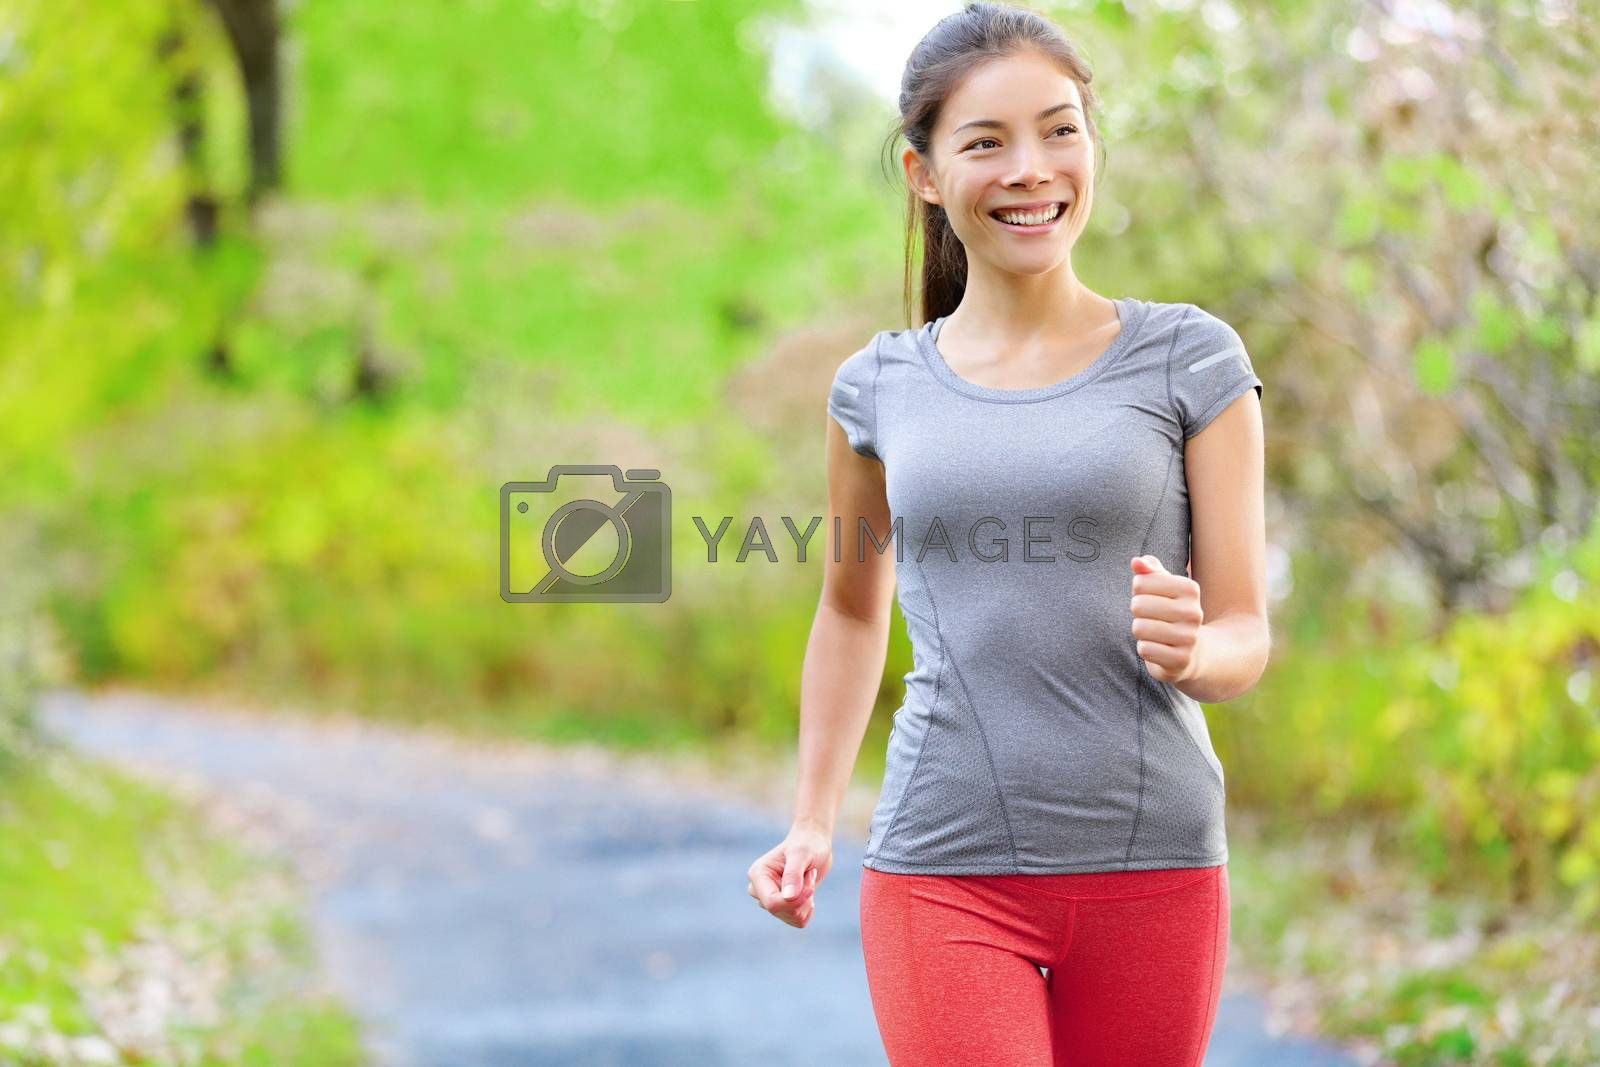 Woman nordic speed power walking, jogging and running lightly in forest in spring or summer. Sport fitness girl sports training and working out living healthy active lifestyle in forest.